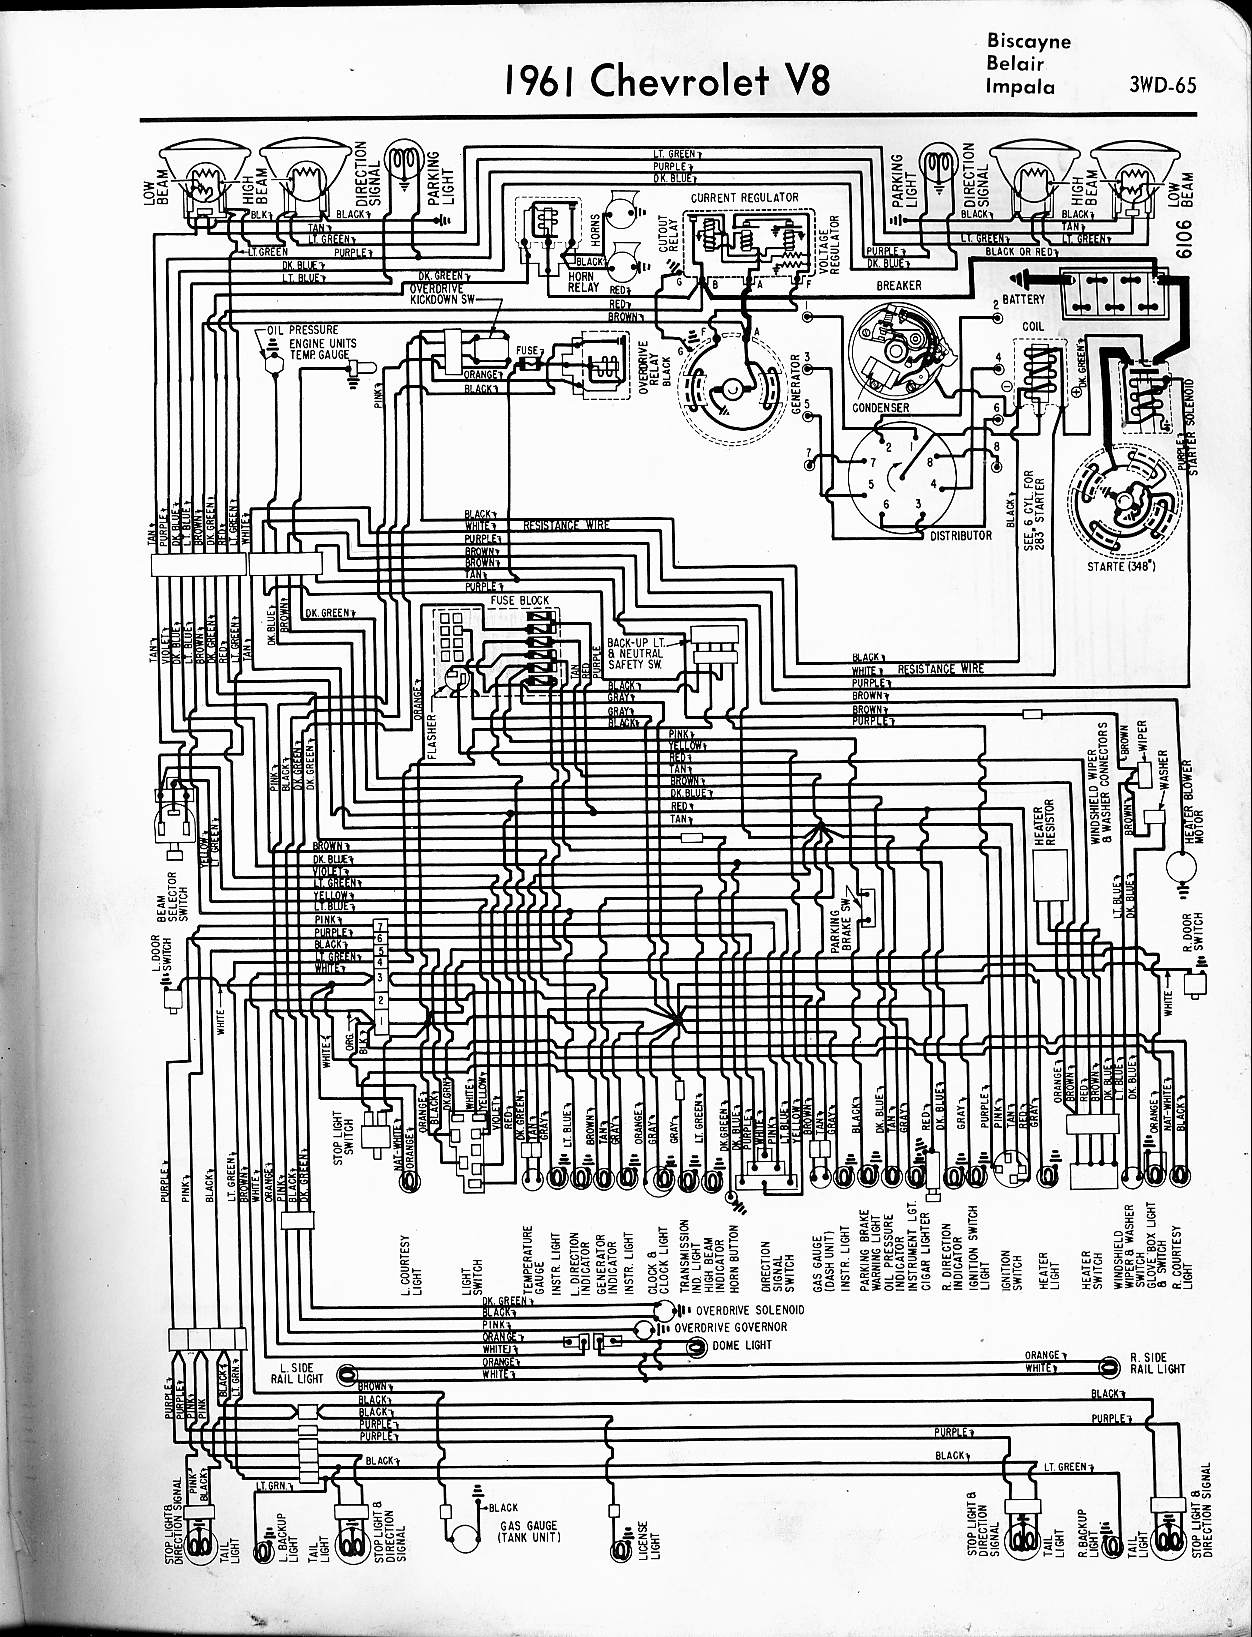 wiring diagram 71 chevy truck wiring diagram automotive1963 chevy c10 wiring harness data wiring diagram updatewiring diagram for 1963 chevy truck wiring diagram